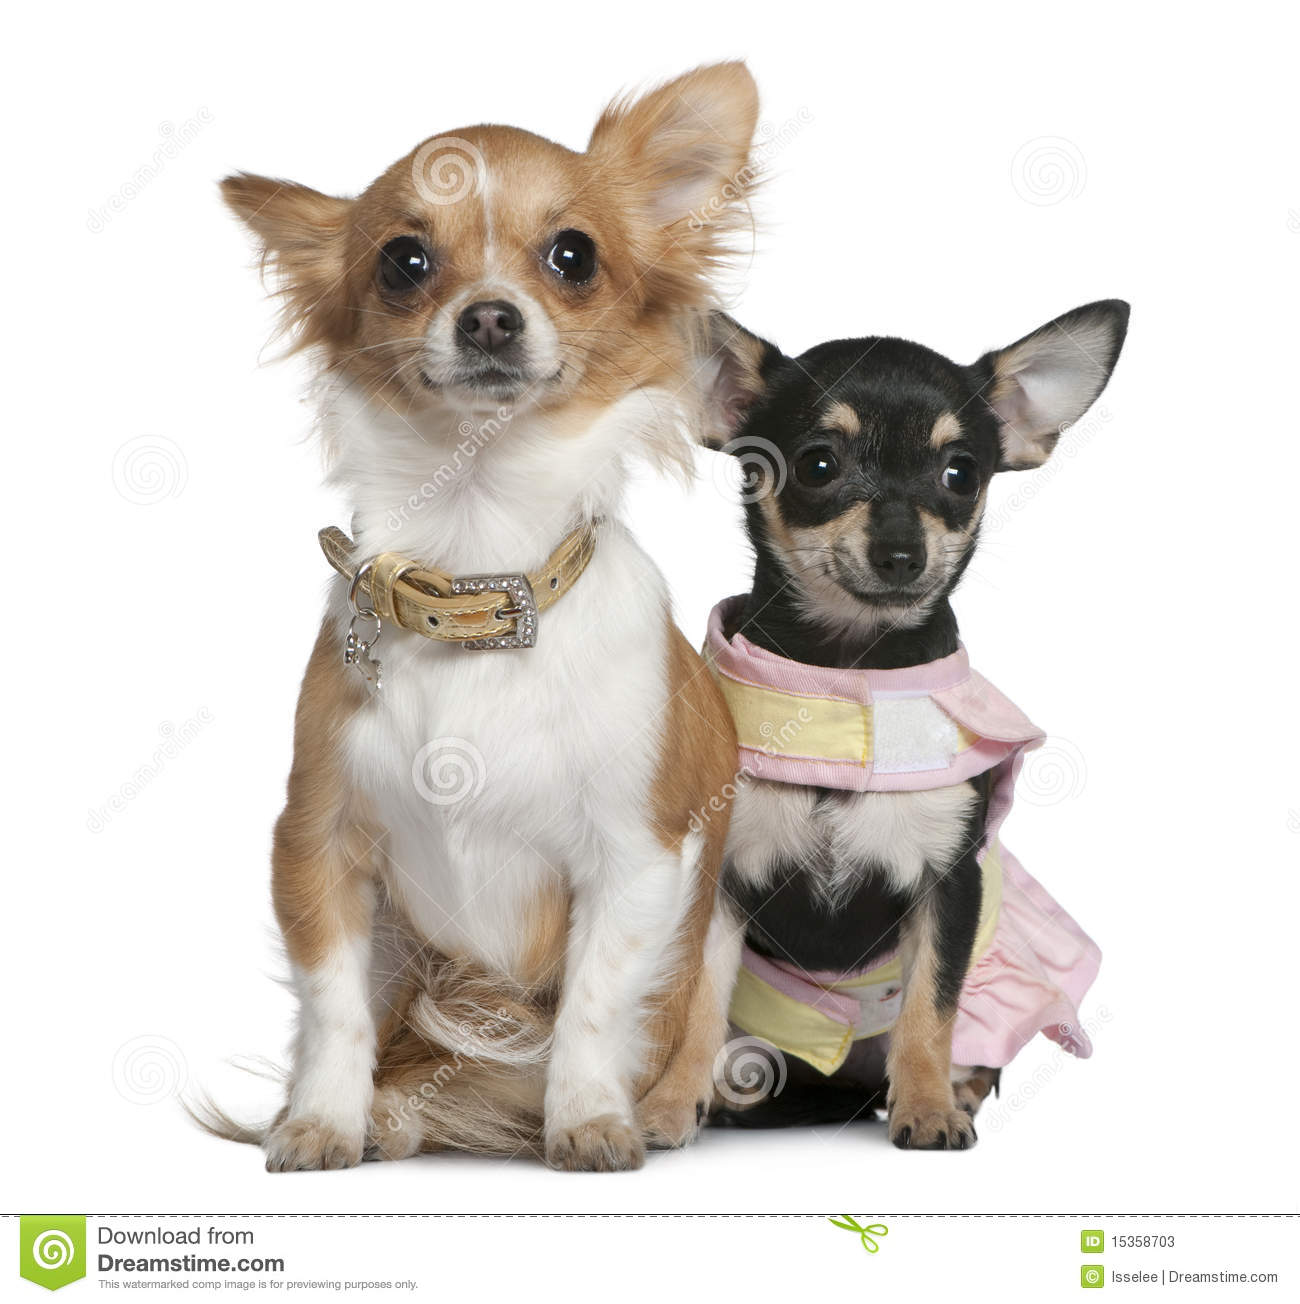 Two Chihuahuas, 6 months and 1 year old, sitting